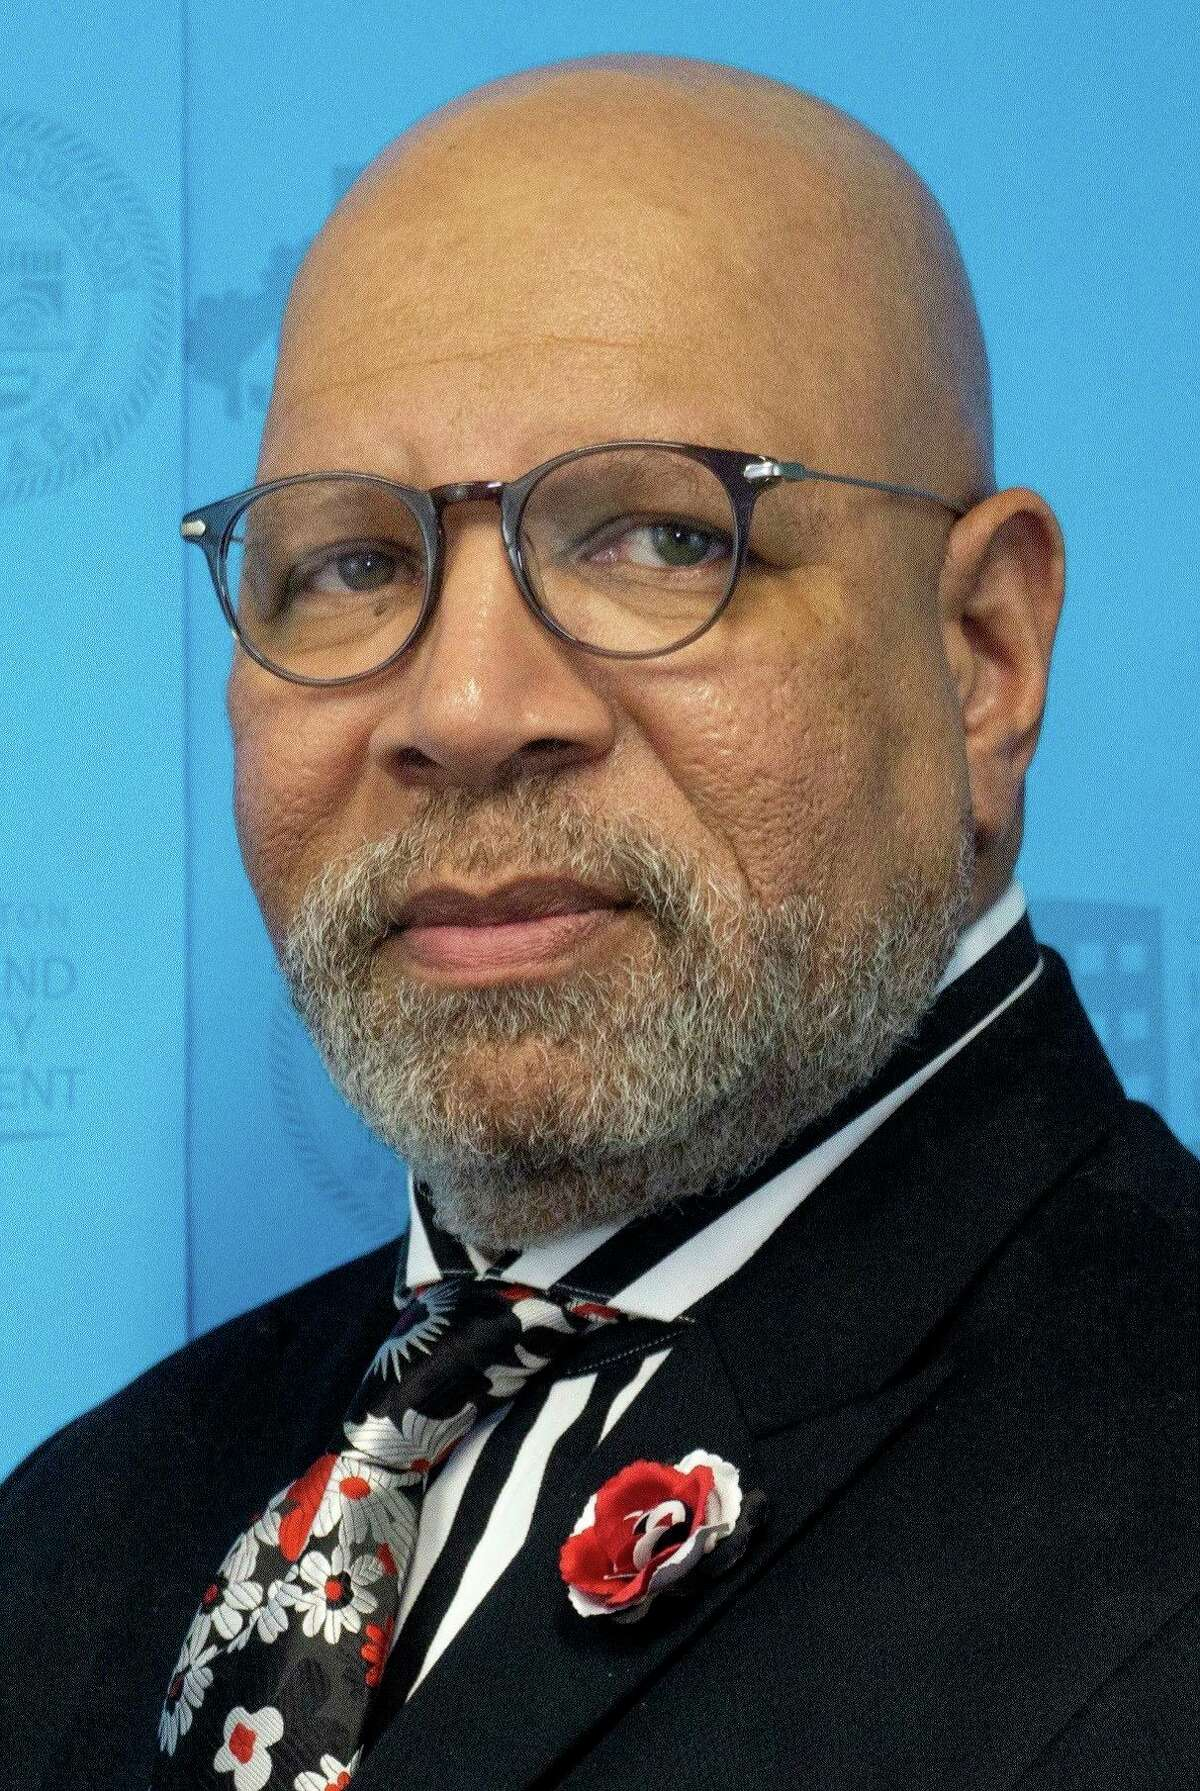 Keith Bynam has been named the interim director of the city's Housing and Community Development Department. Mayor Sylvester Turner fired his predecessor, Tom McCasland, on Tuesday after McCasland accused the administration of steering affordable housing money to a select developer.